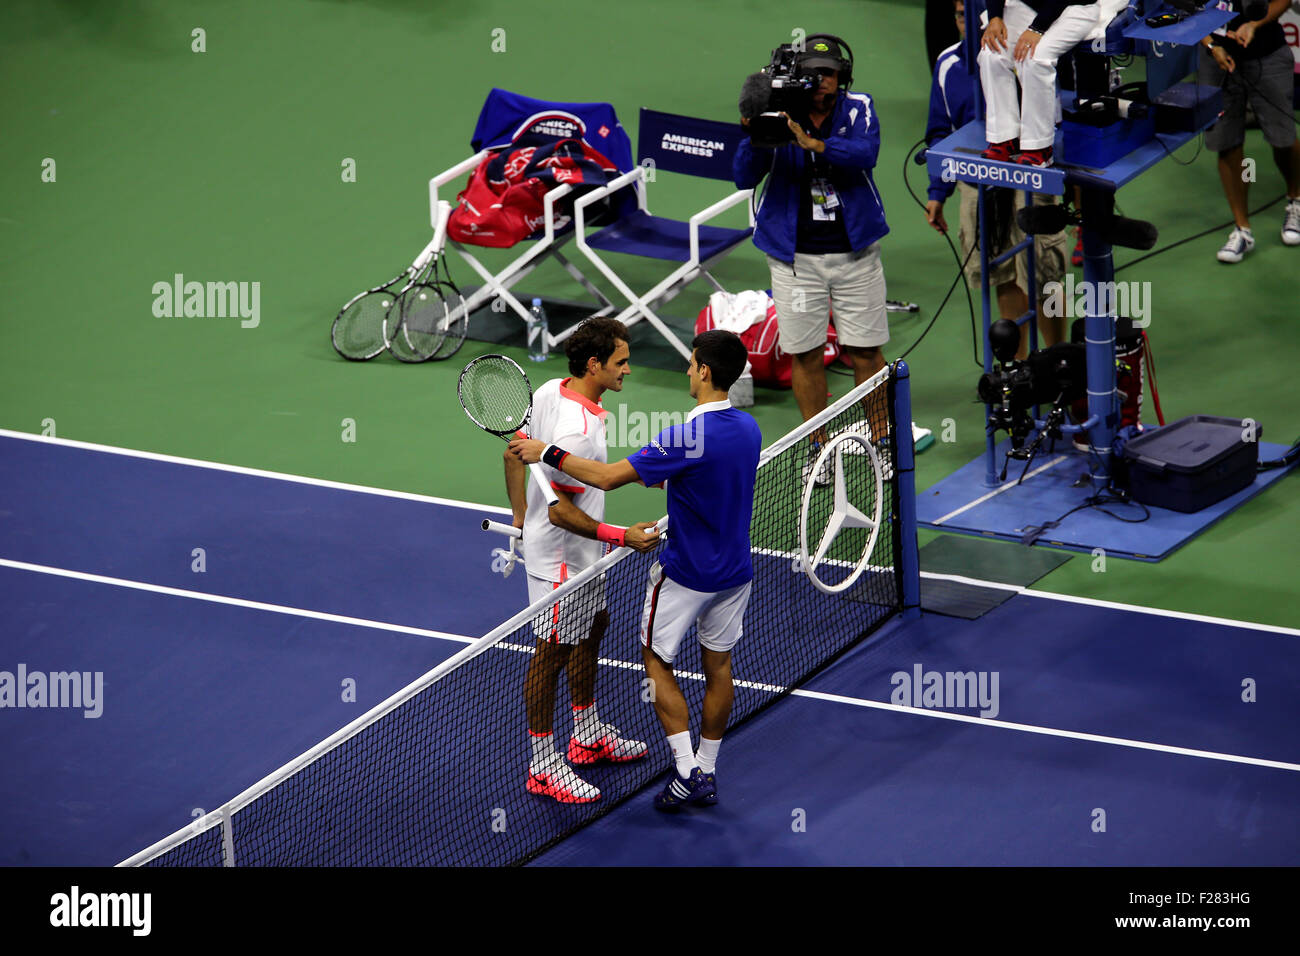 New York, USA. 13th Sep, 2015. Novak Djokovic of Serbia shakes hands with Roger Federer after Djokovic defeated - Stock Image